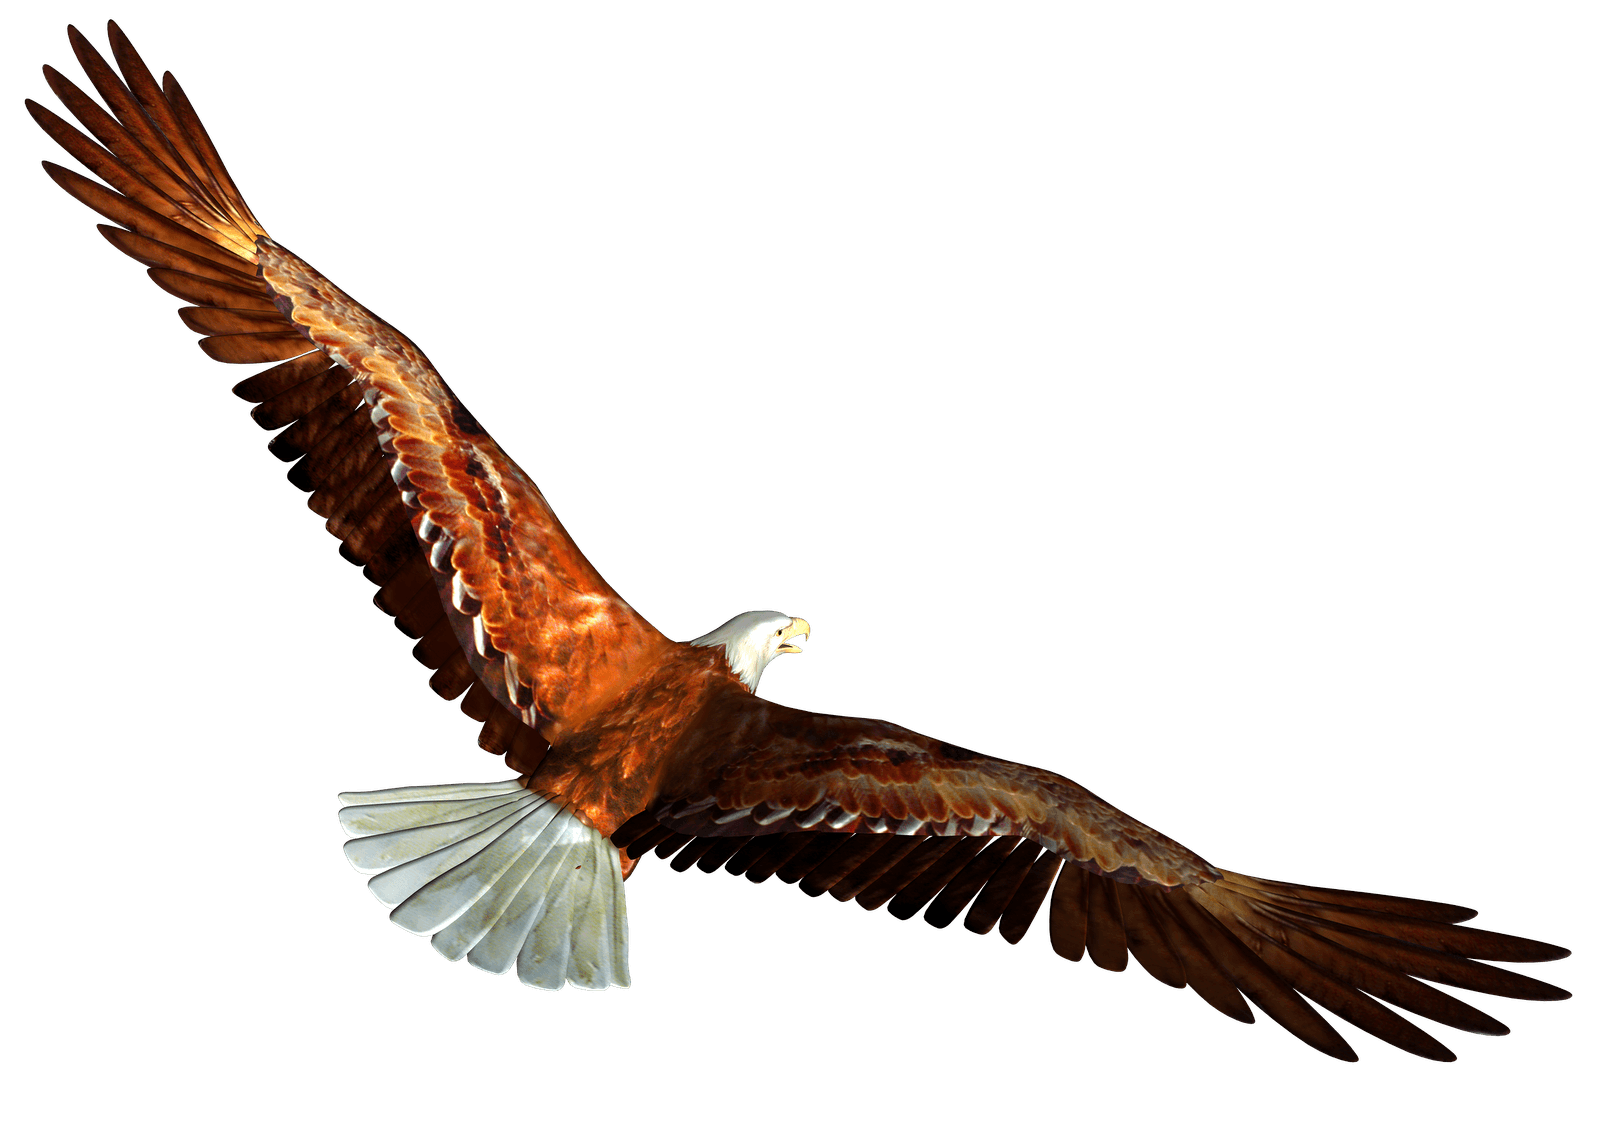 Animated Bald Eagle From Behind Png Image Bald Eagle Eagle In Flight Cartoon Clip Art